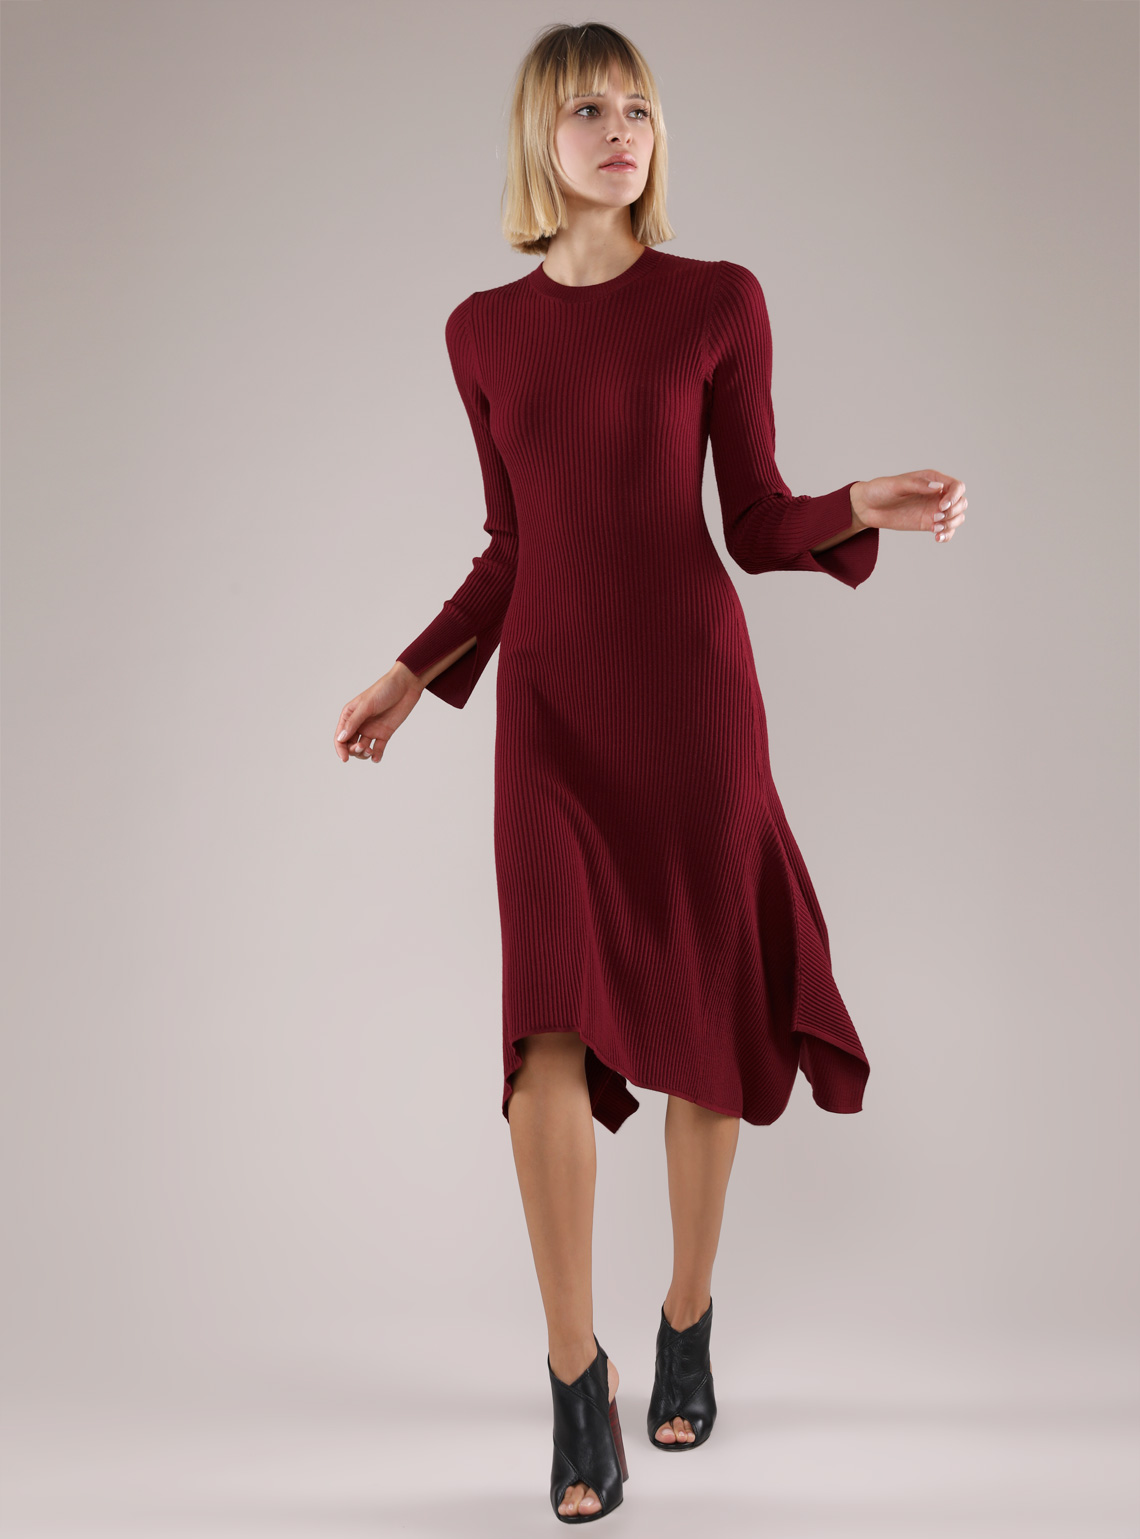 Women's Merino Wool Rib Dress